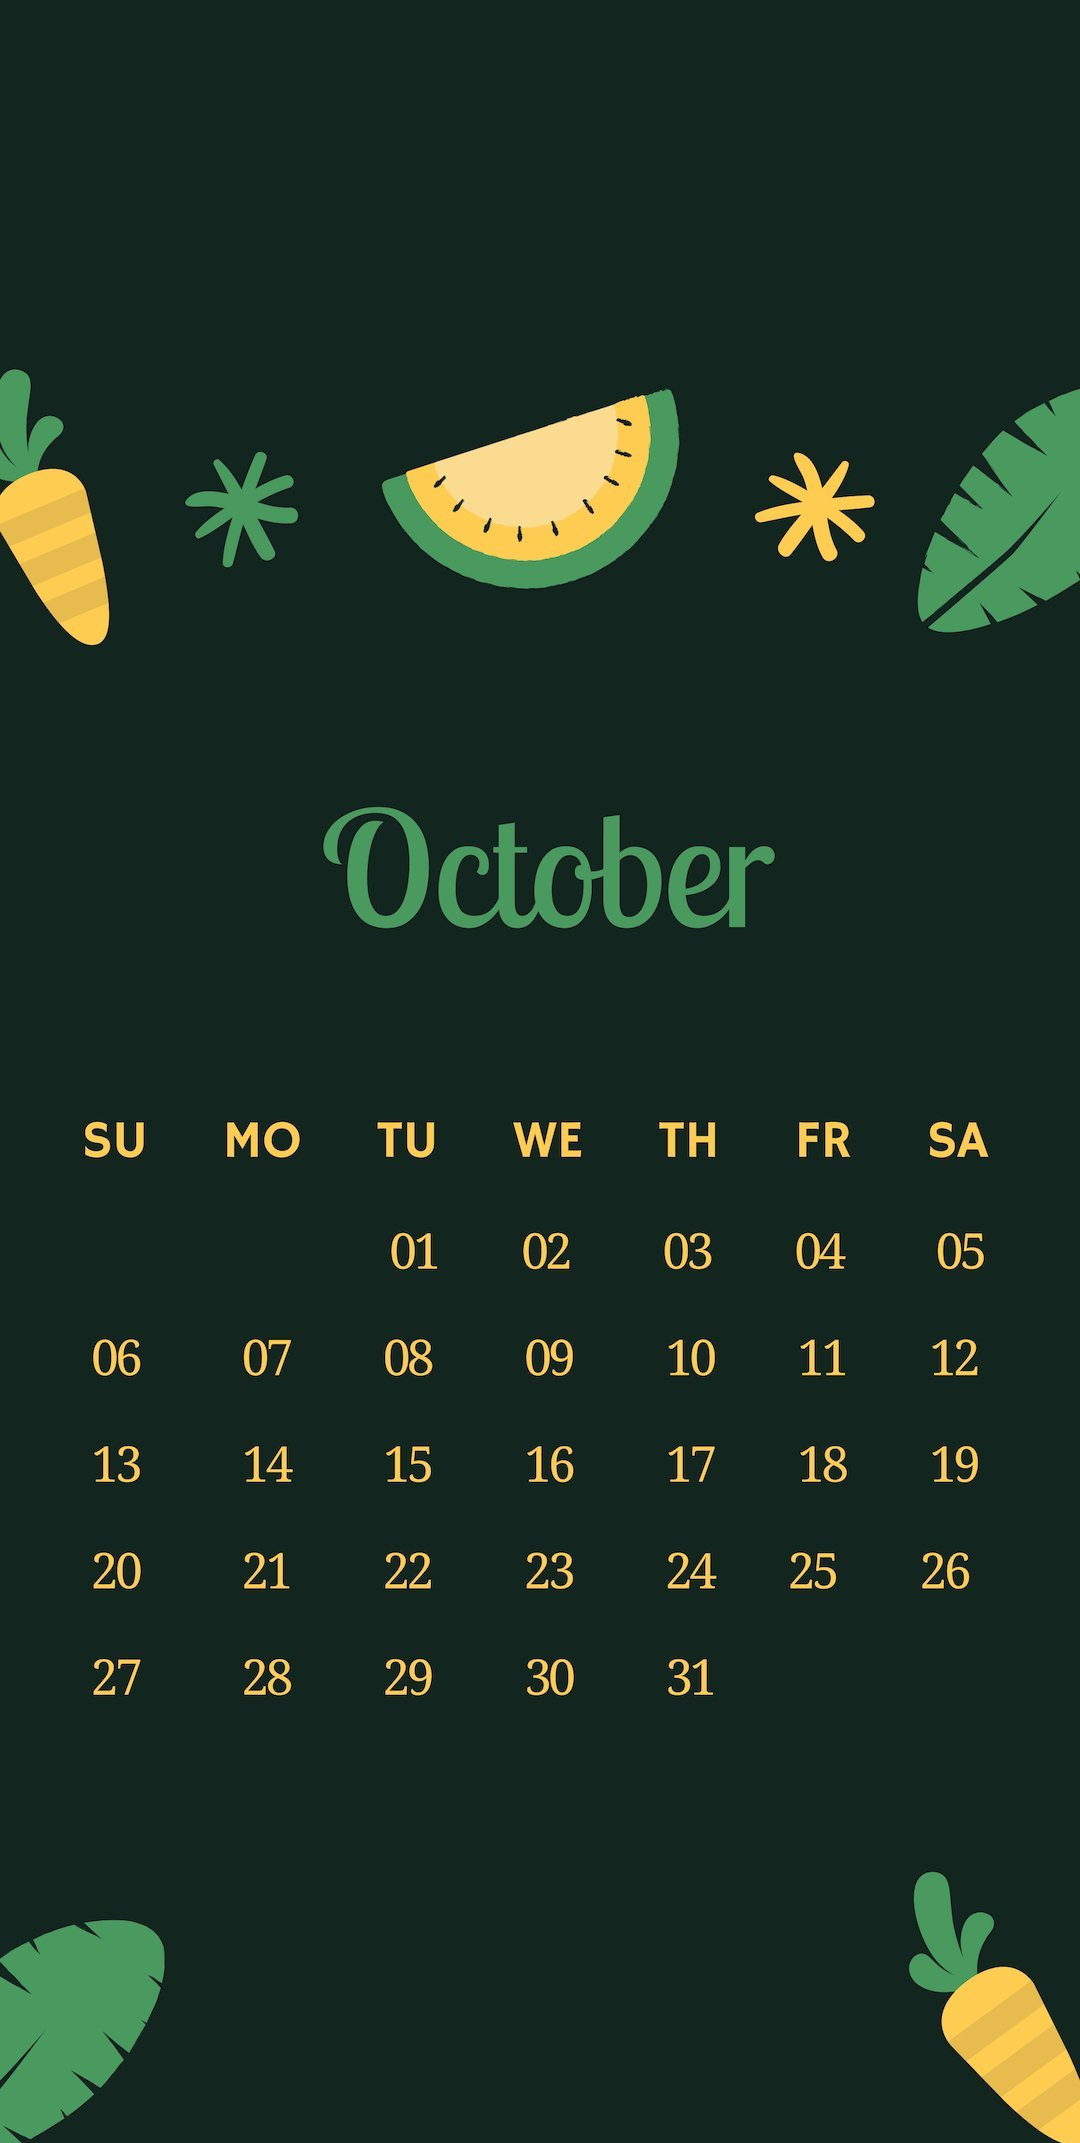 Free October 2019 iPhone Calendar Wallpaper